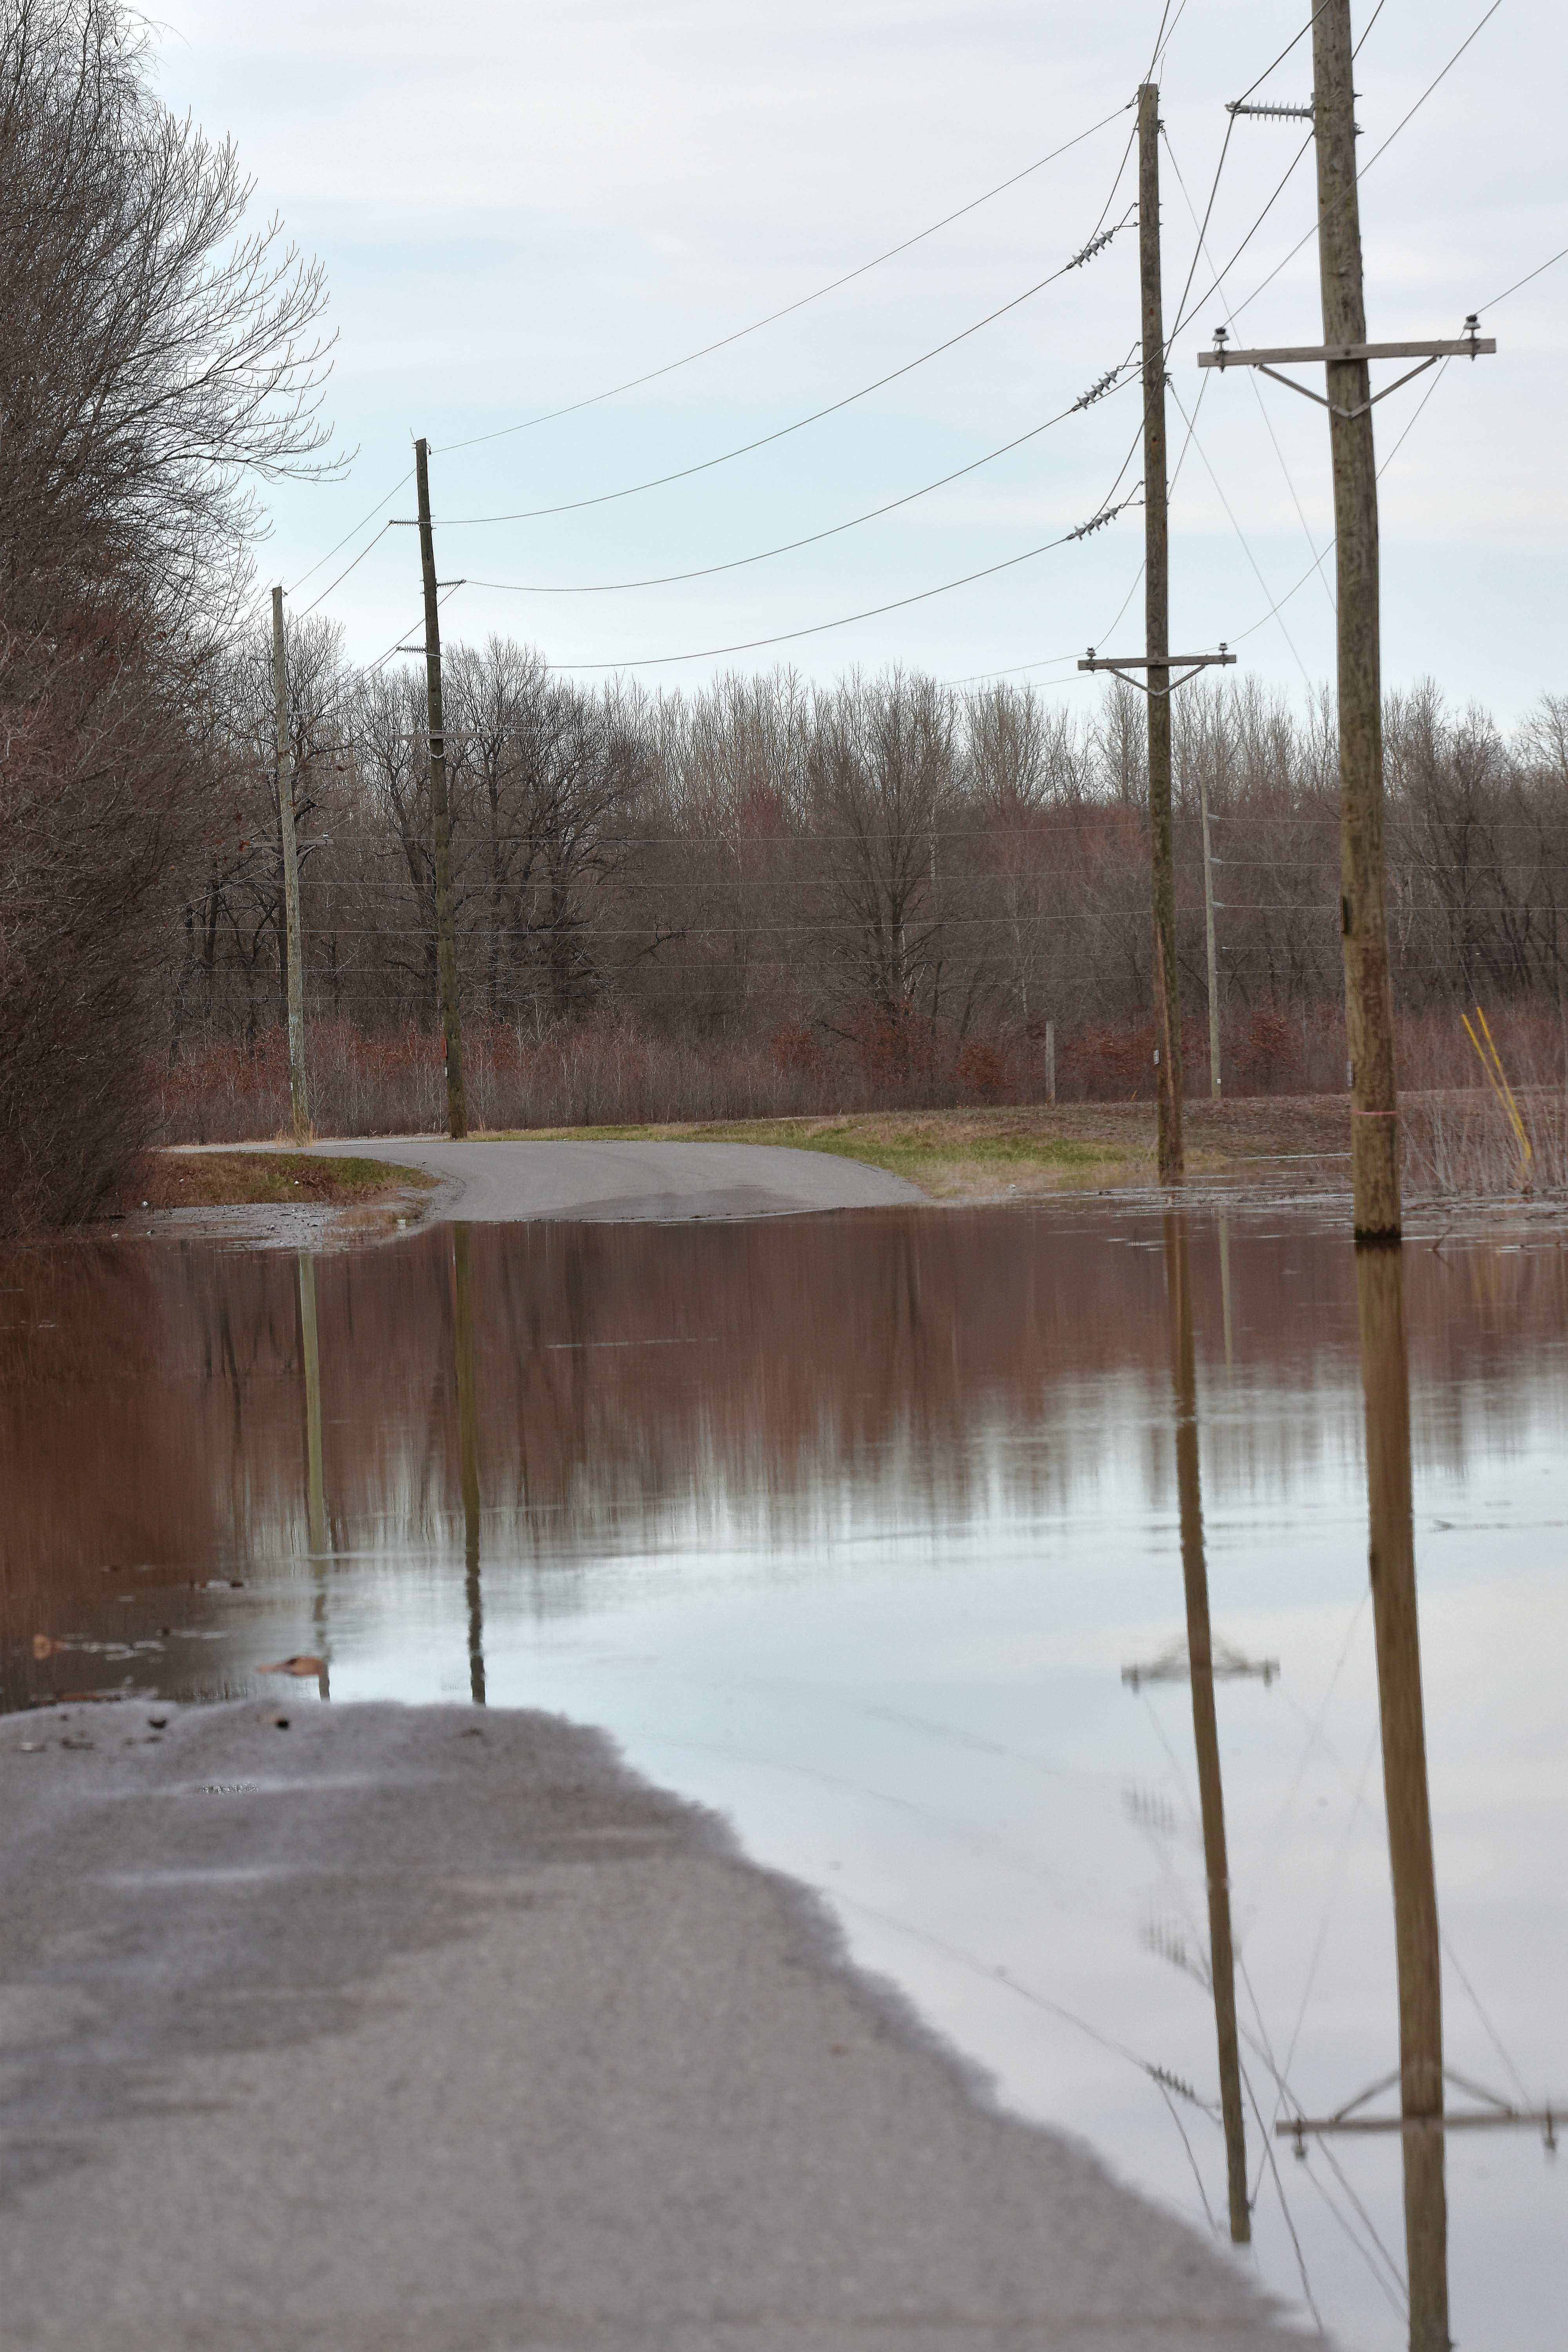 Water covers a portion of Whitesville Road. Some Saline County roads will be covered with water as the Ohio River continues to rise through Sunday. Motorists are urged not to attempt to drive through flooded roads.